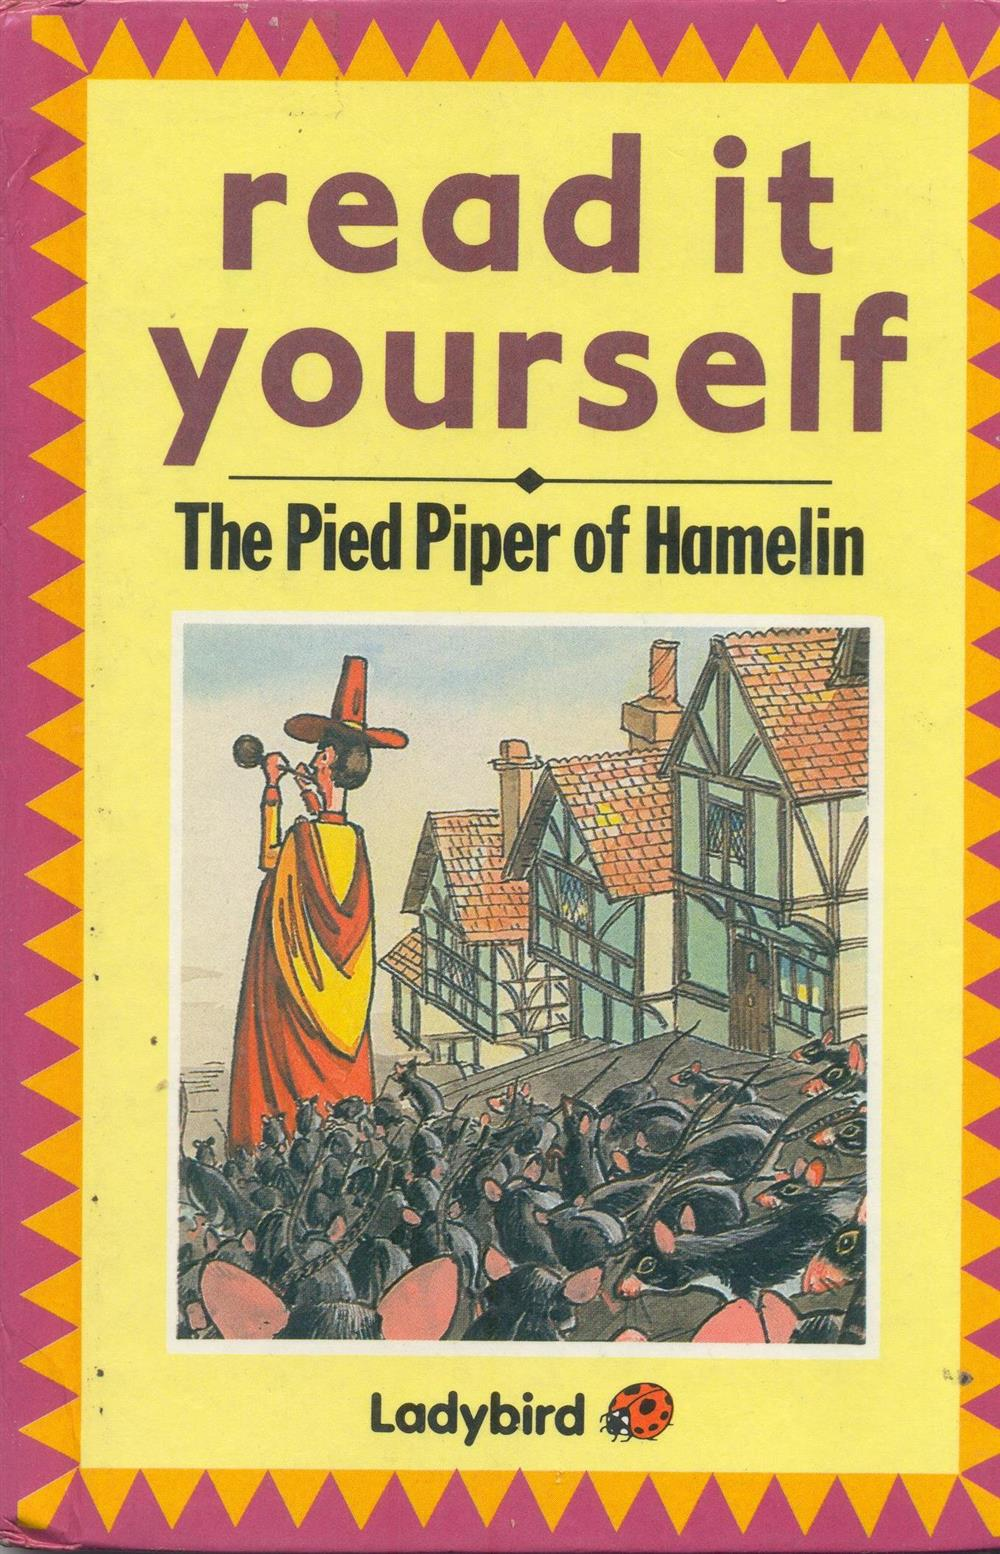 tHE pIED pIPER OF hAMELIN.jpg